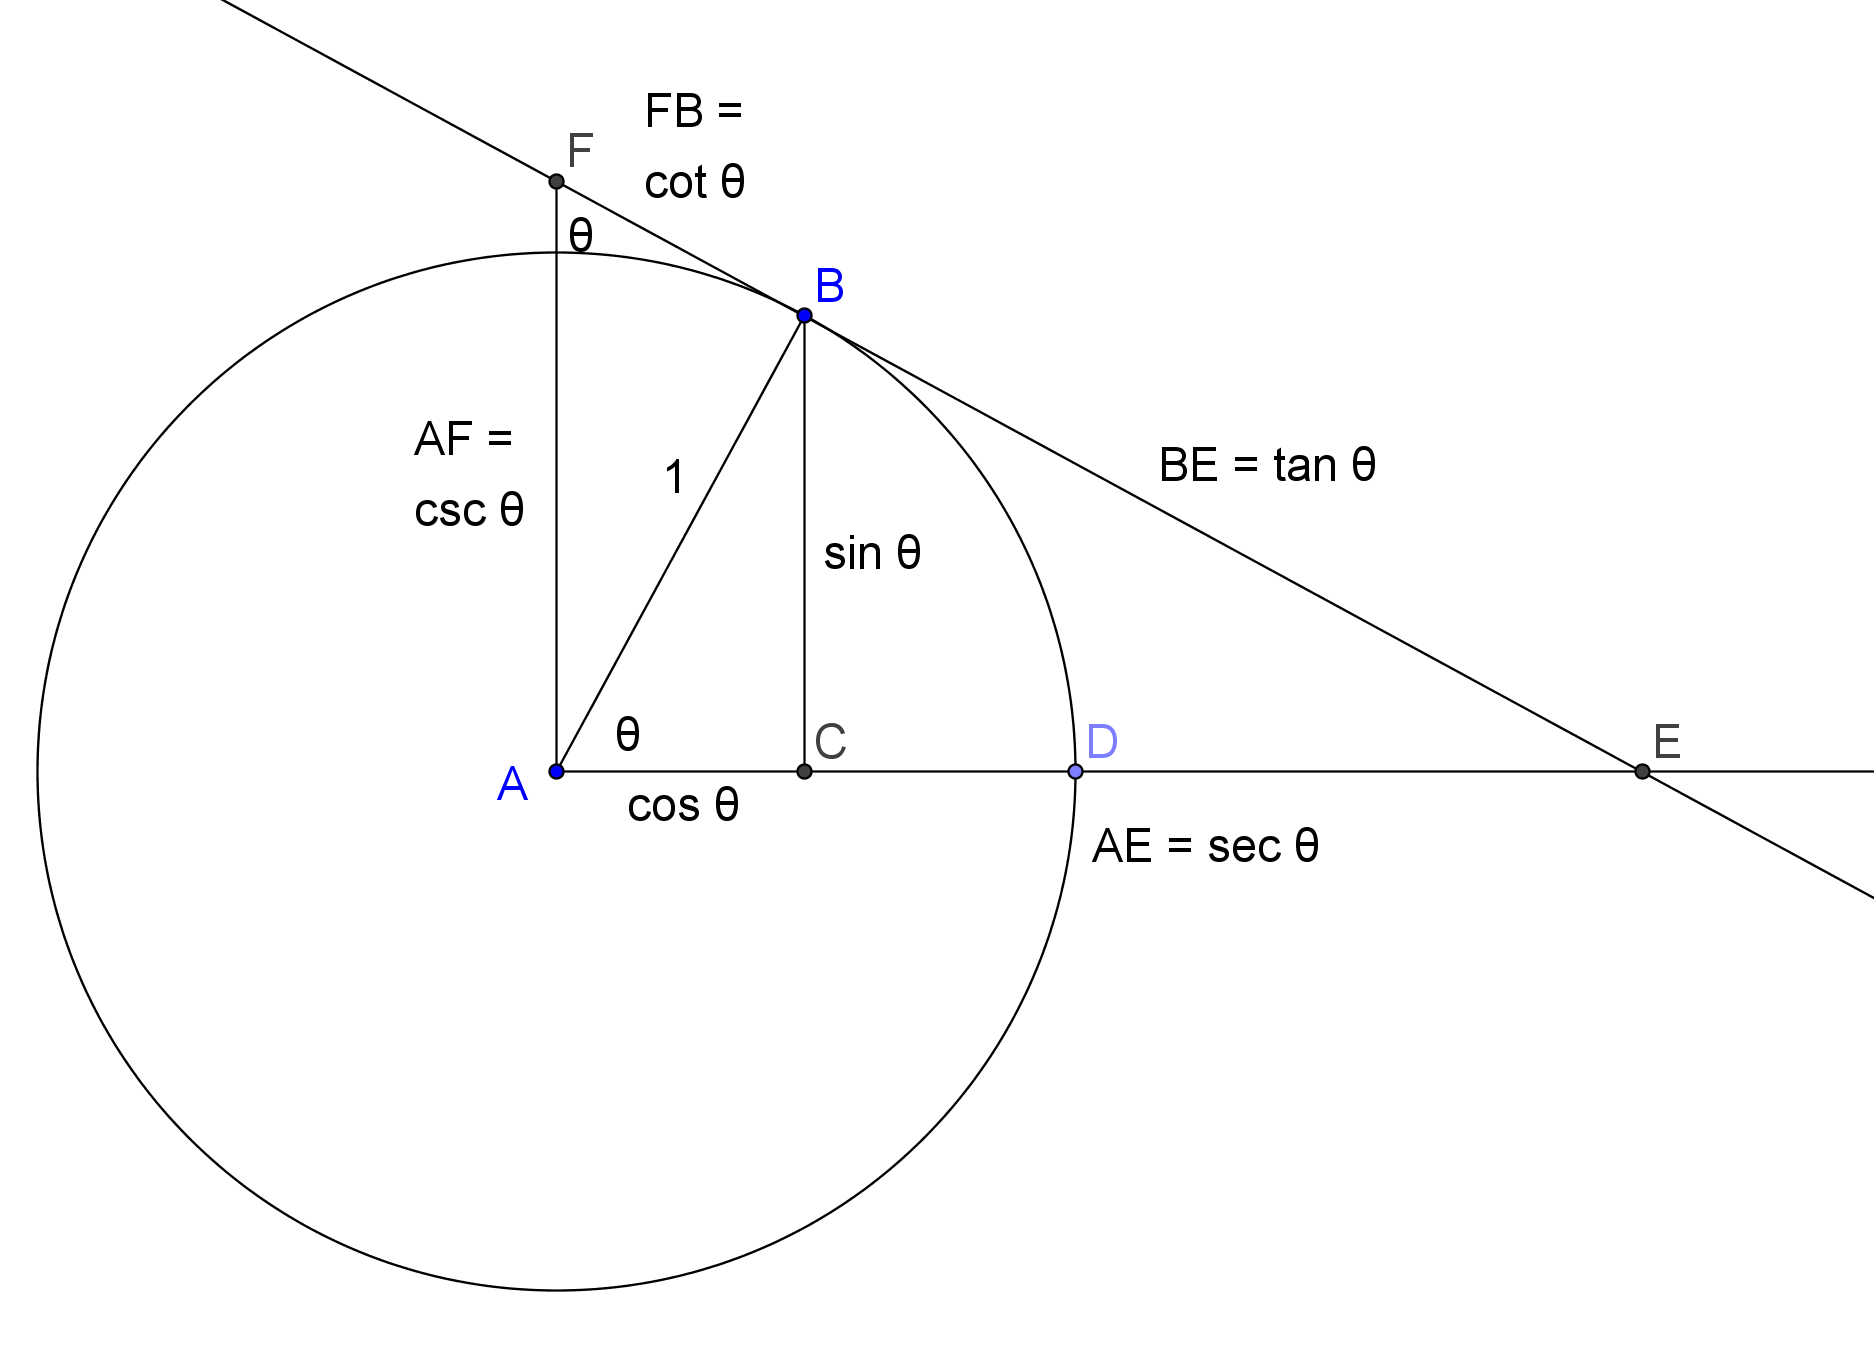 All Trig Functions In One Figure